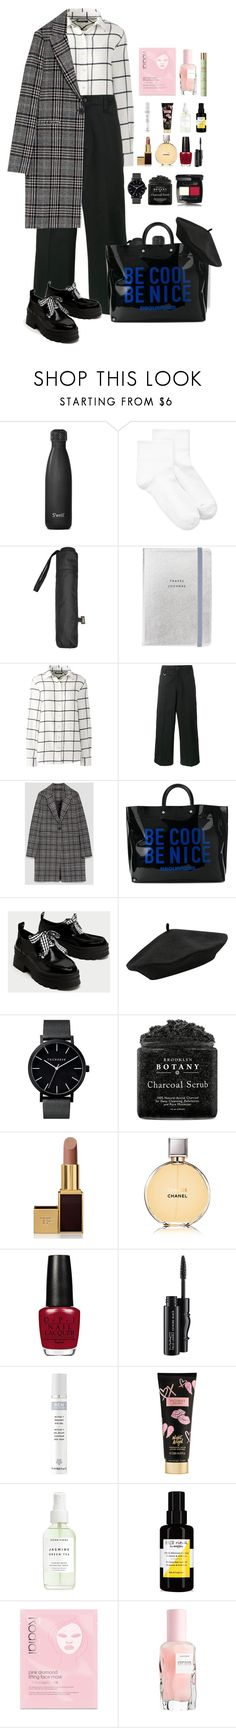 """Checks."" by krys-imvu ❤ liked on Polyvore featuring S'well, HUE, MANGO, Lands' End, Sophnet., Dsquared2, M&Co, Tom Ford, Chanel and MAC Cosmetics"